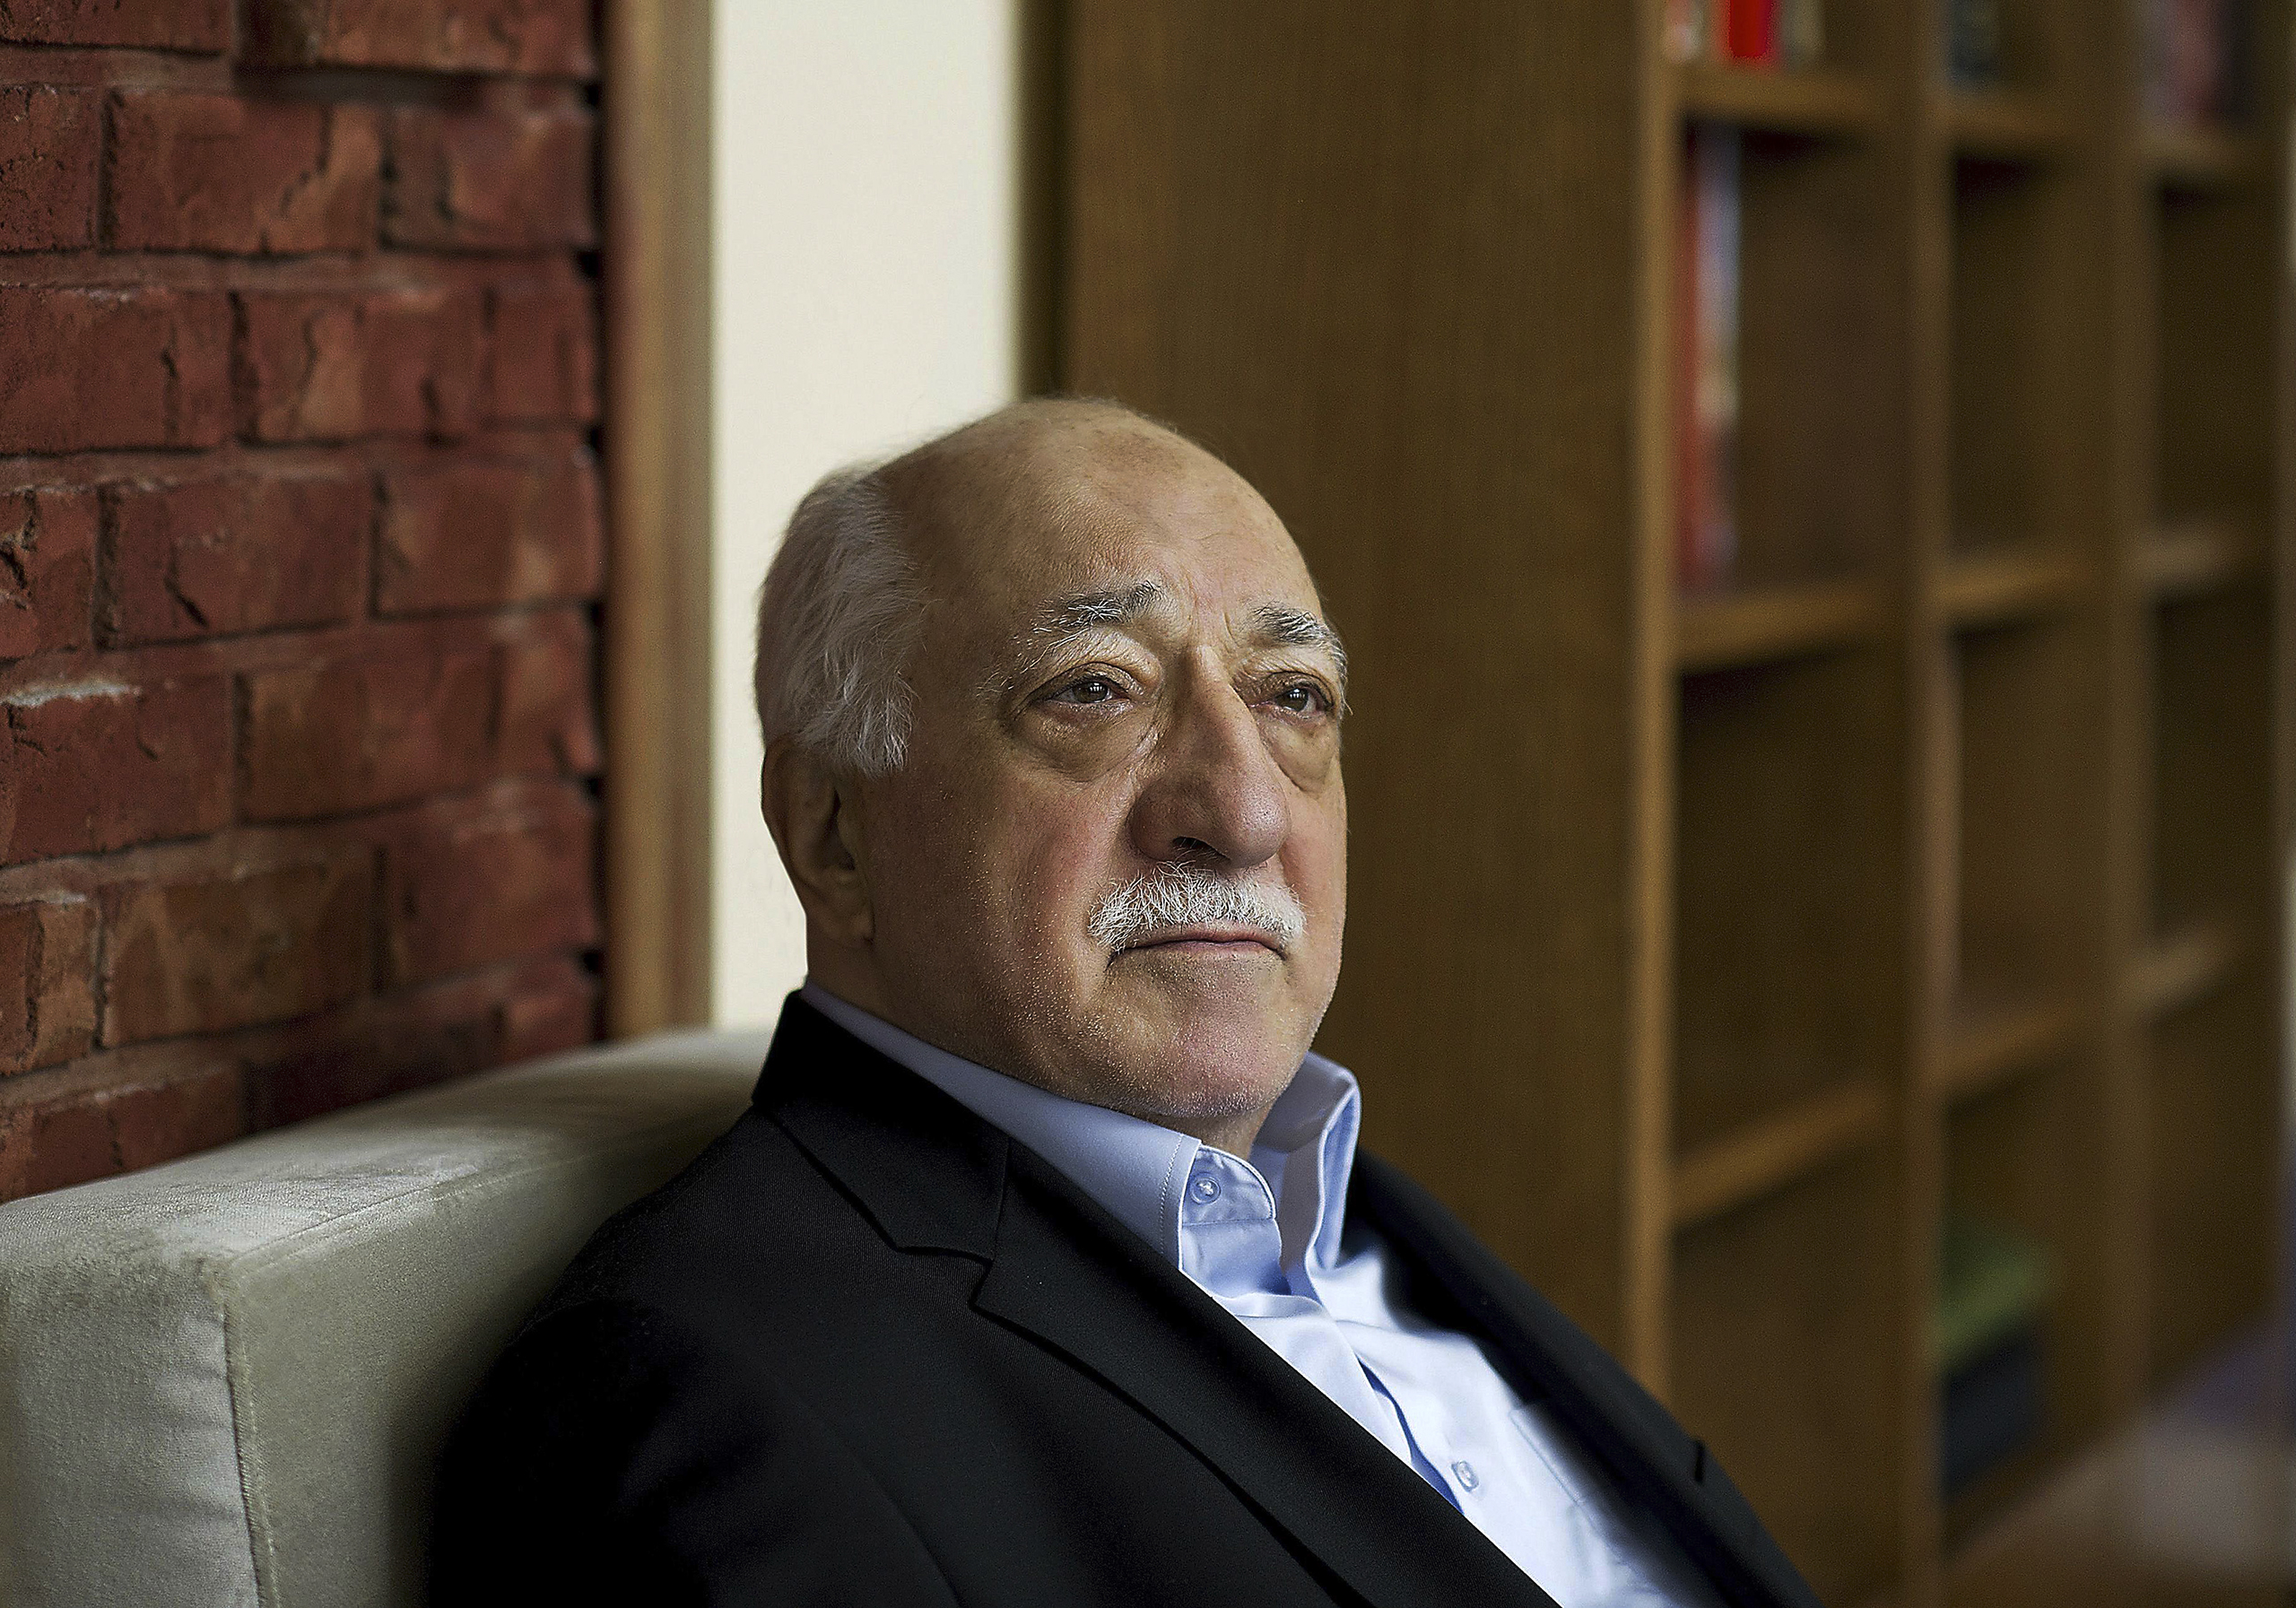 In this March 15, 2014, file photo, Turkish Islamic preacher Fethullah Gulen sits in his residence in Saylorsburg, Pa.